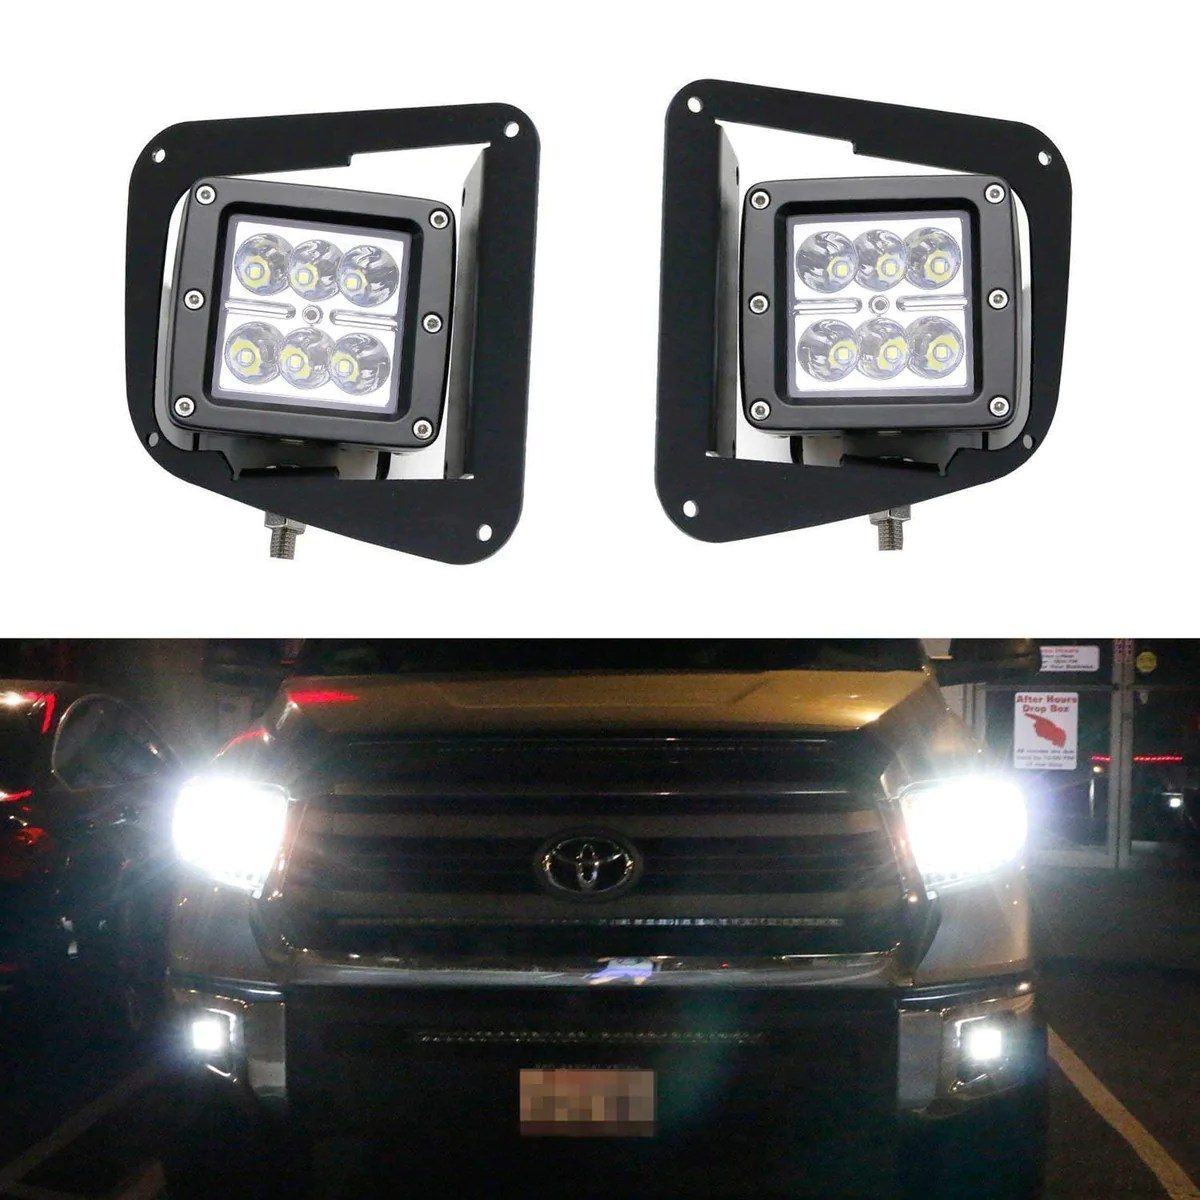 small resolution of led pod light fog lamp kit for 2014 up toyota tundra includes 2 24w high power 2x3 cree led cubes foglight location mount brackets wiring adapter